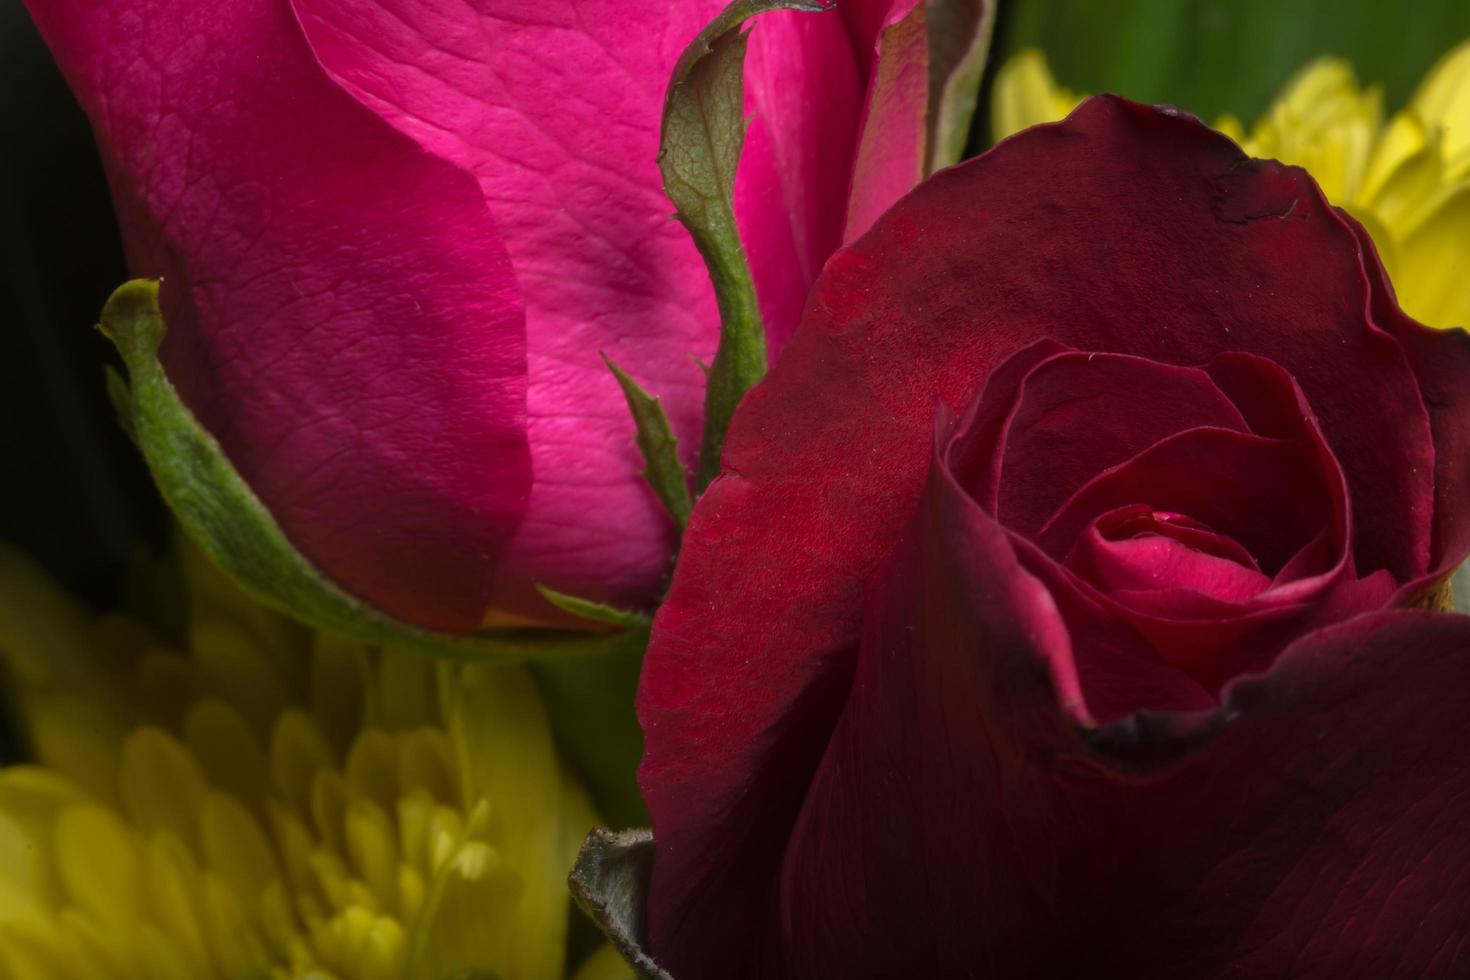 Beautiful red roses close-up photo